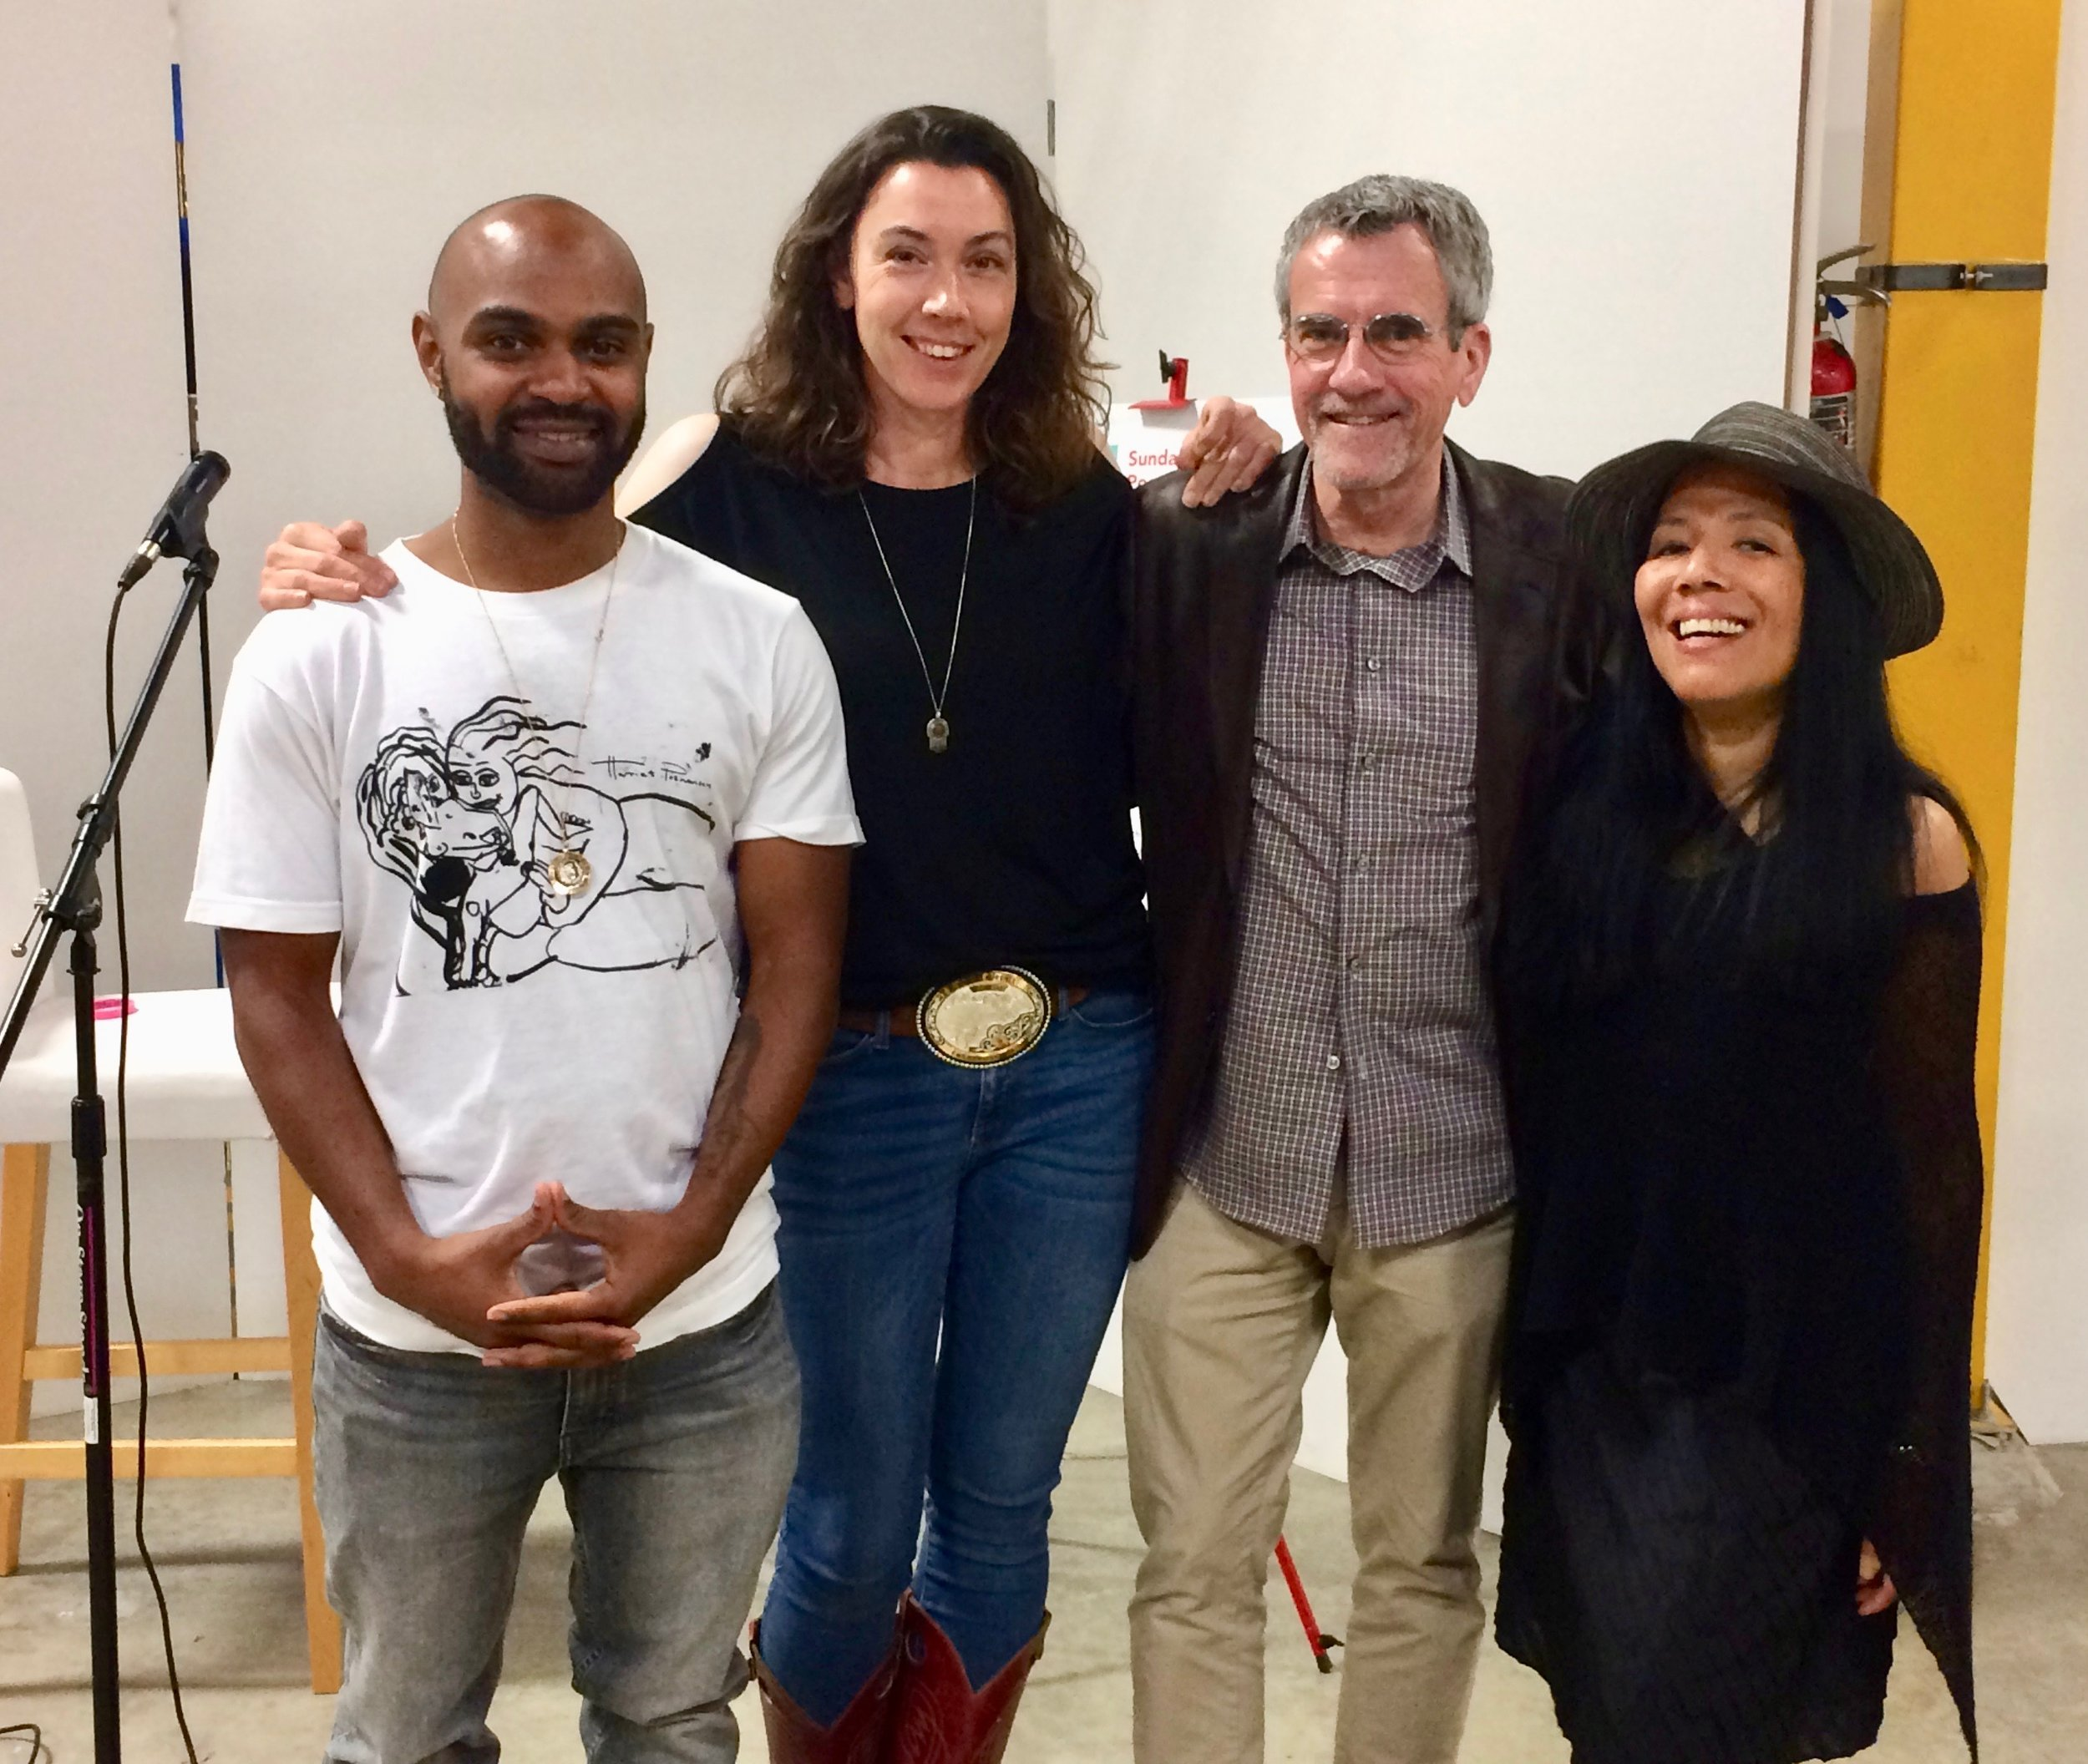 Reading with Rohan DaCosta, Sarah Kobrinsky, and Terry Lucas in Emeryville, 2018.